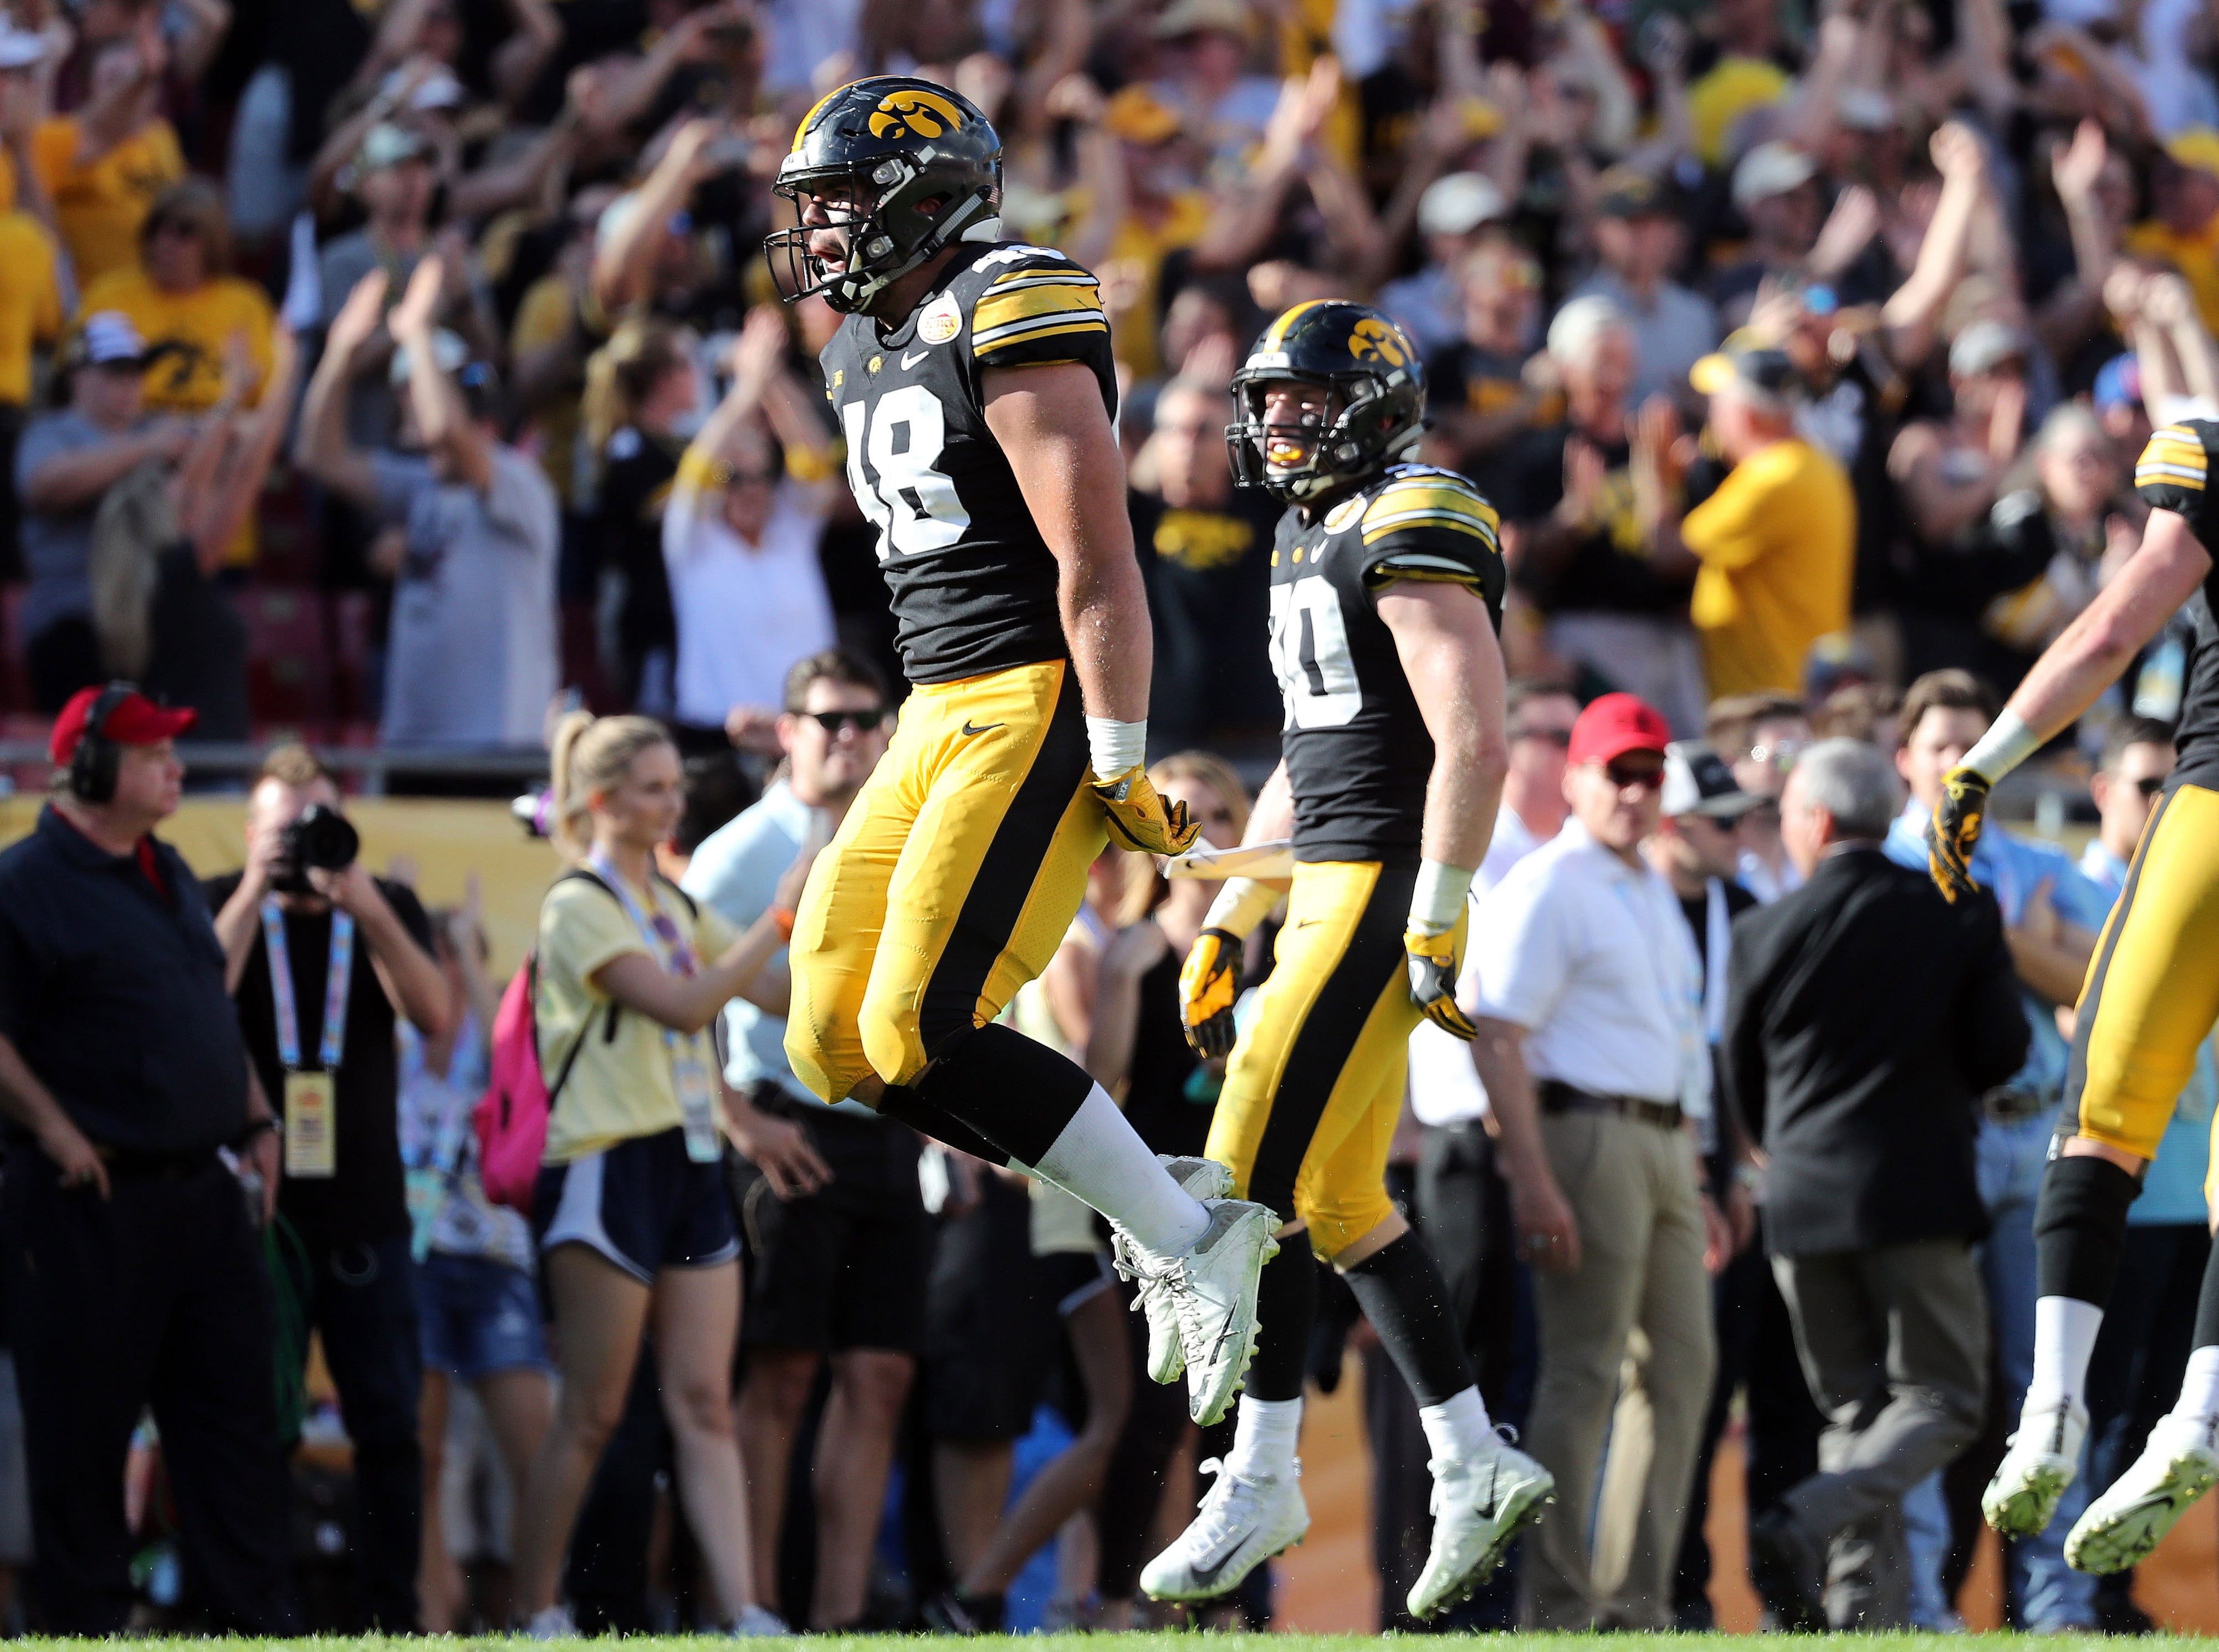 Iowa Hawkeyes linebacker Jack Hockaday (48) and teammates celebrate against the Mississippi State Bulldogs  during the second half of the Outback Bowl.